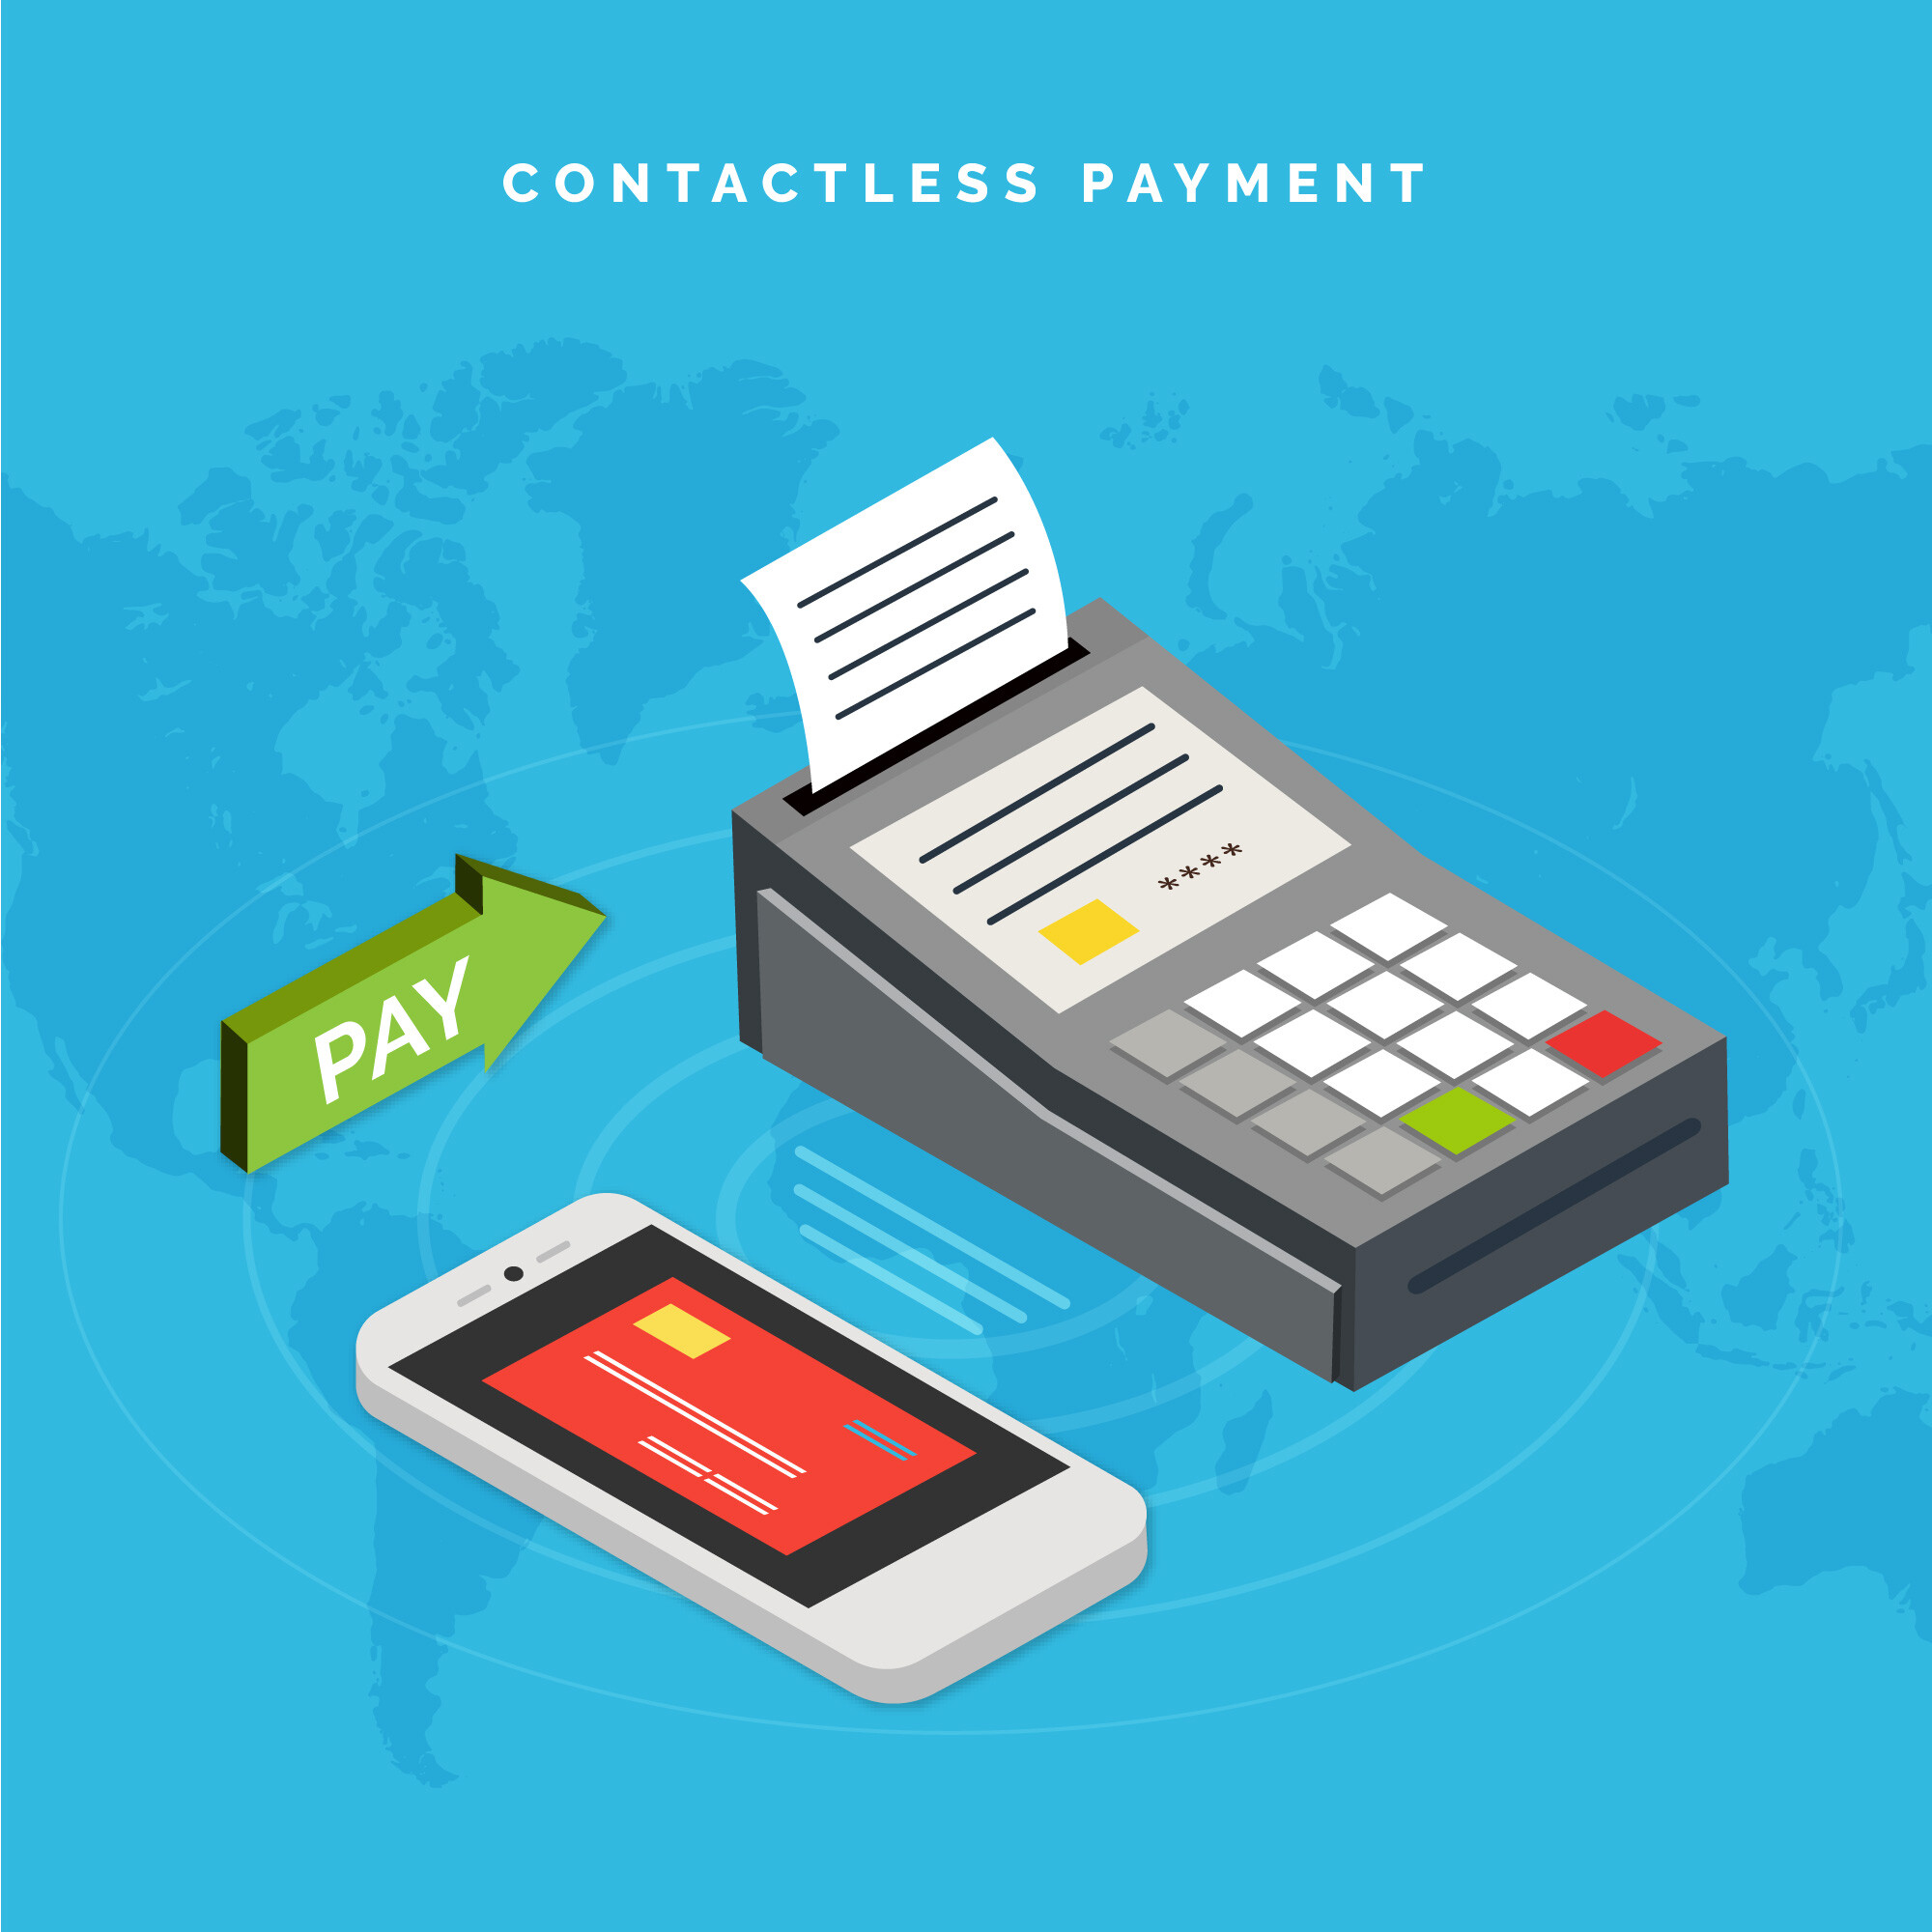 Contactless payment on world map background